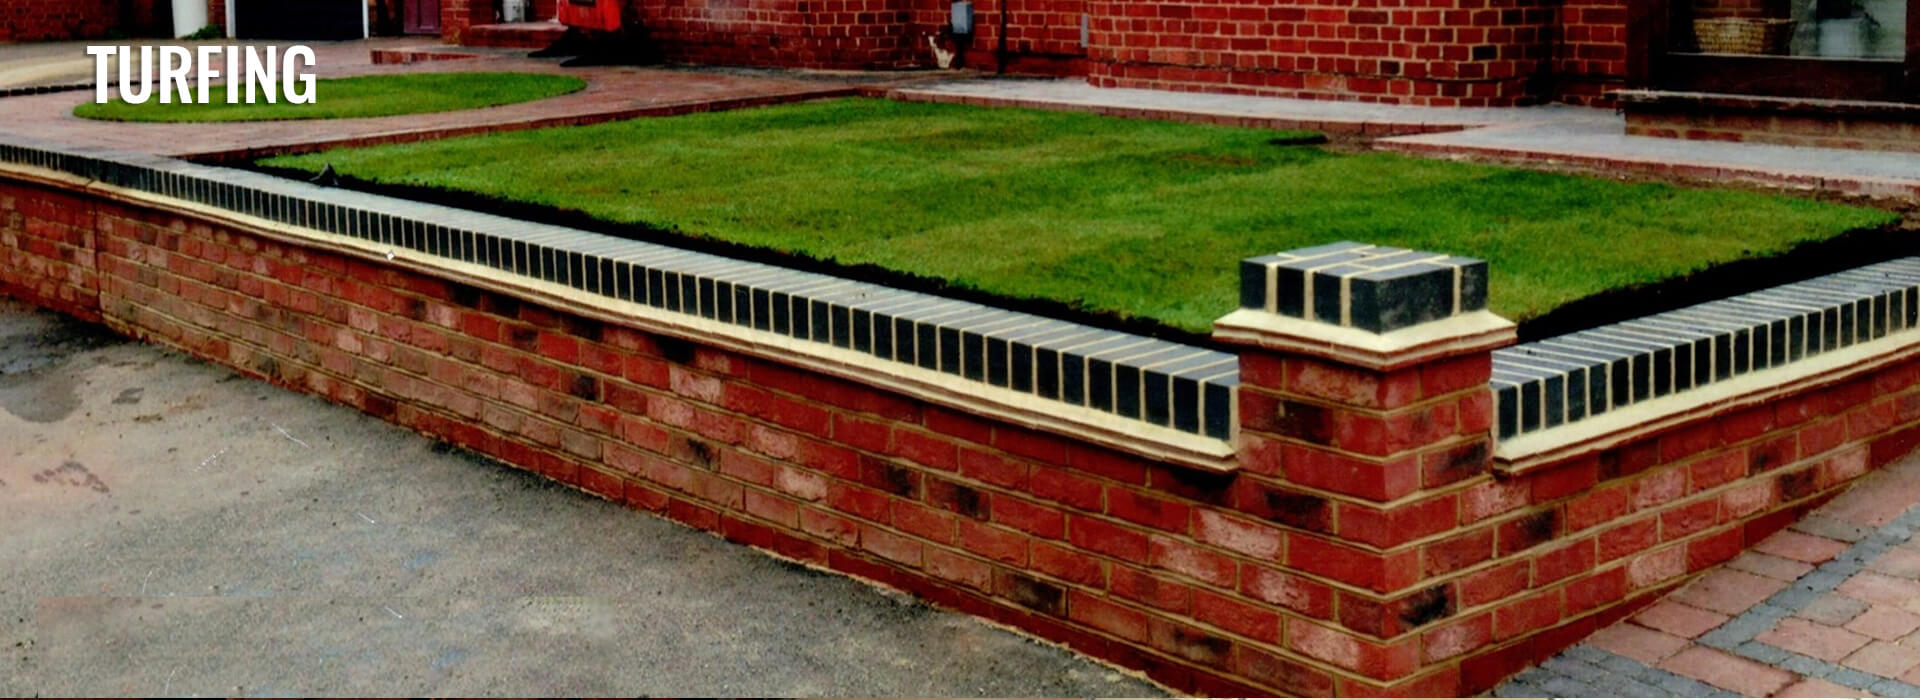 turfing ruxley landscapes